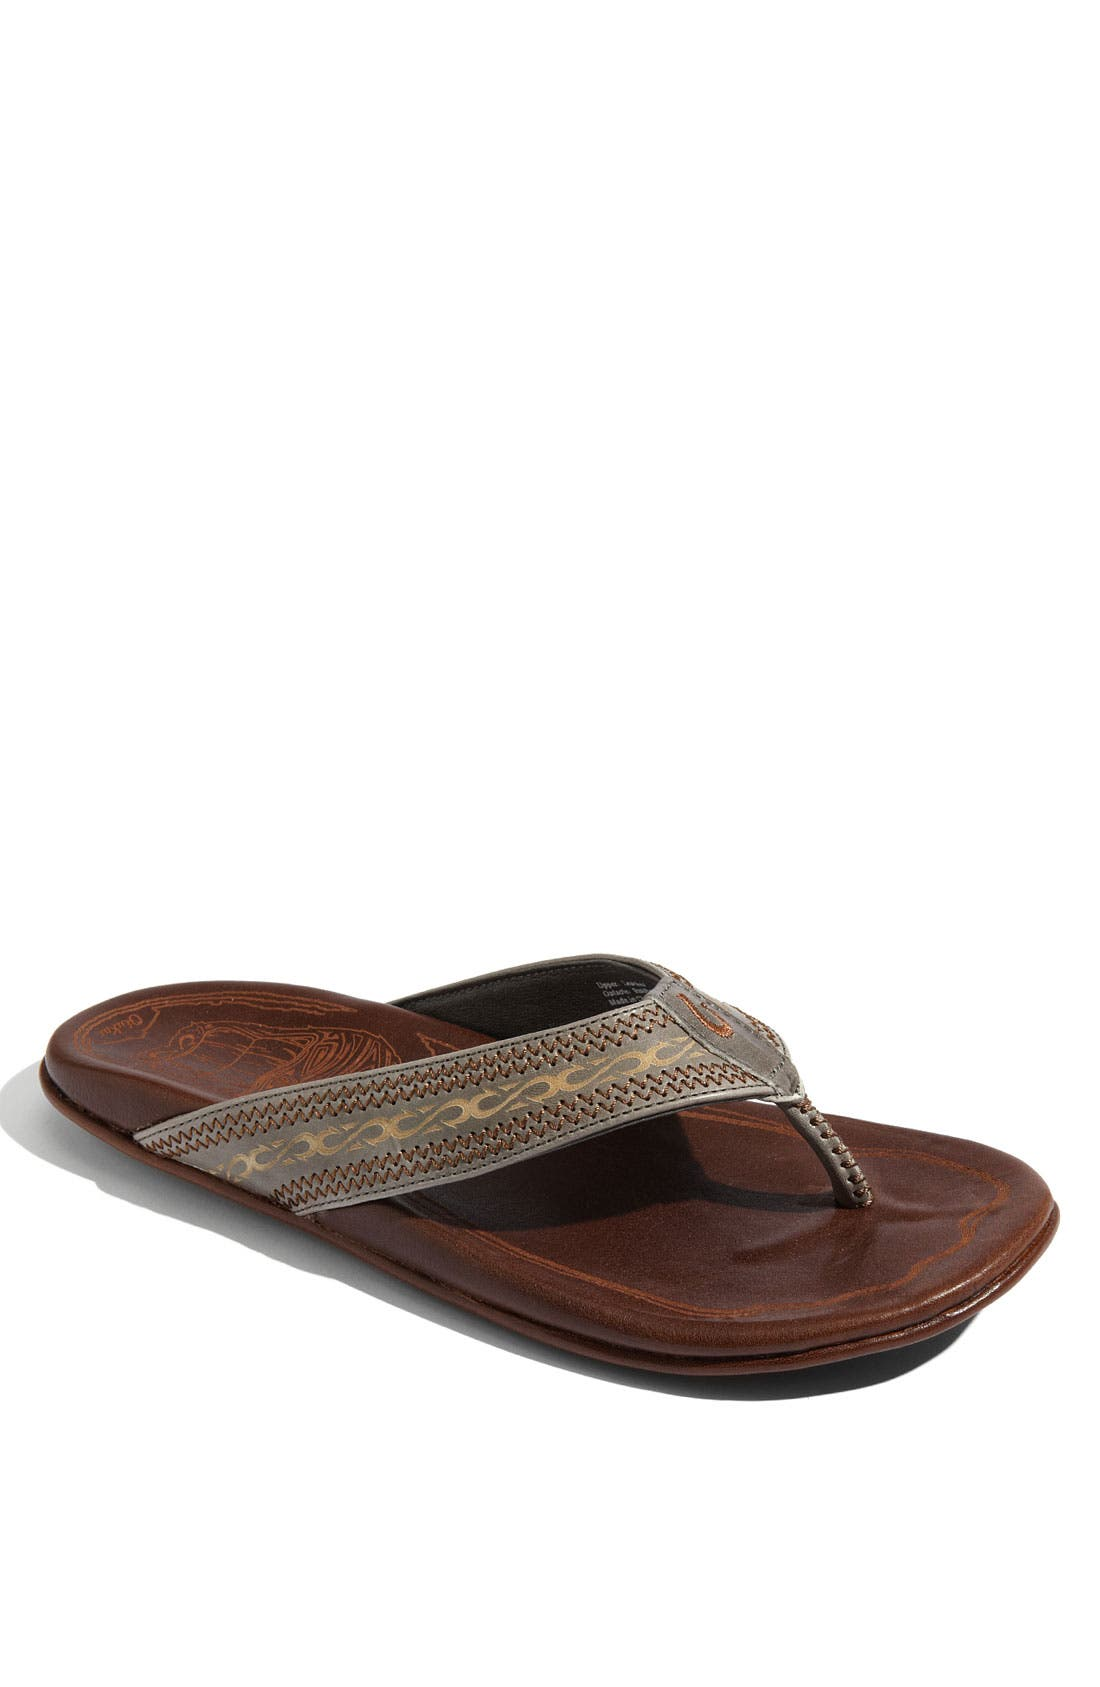 Main Image - OluKai 'Akua' Flip Flop (Nordstrom Exclusive) (Men)